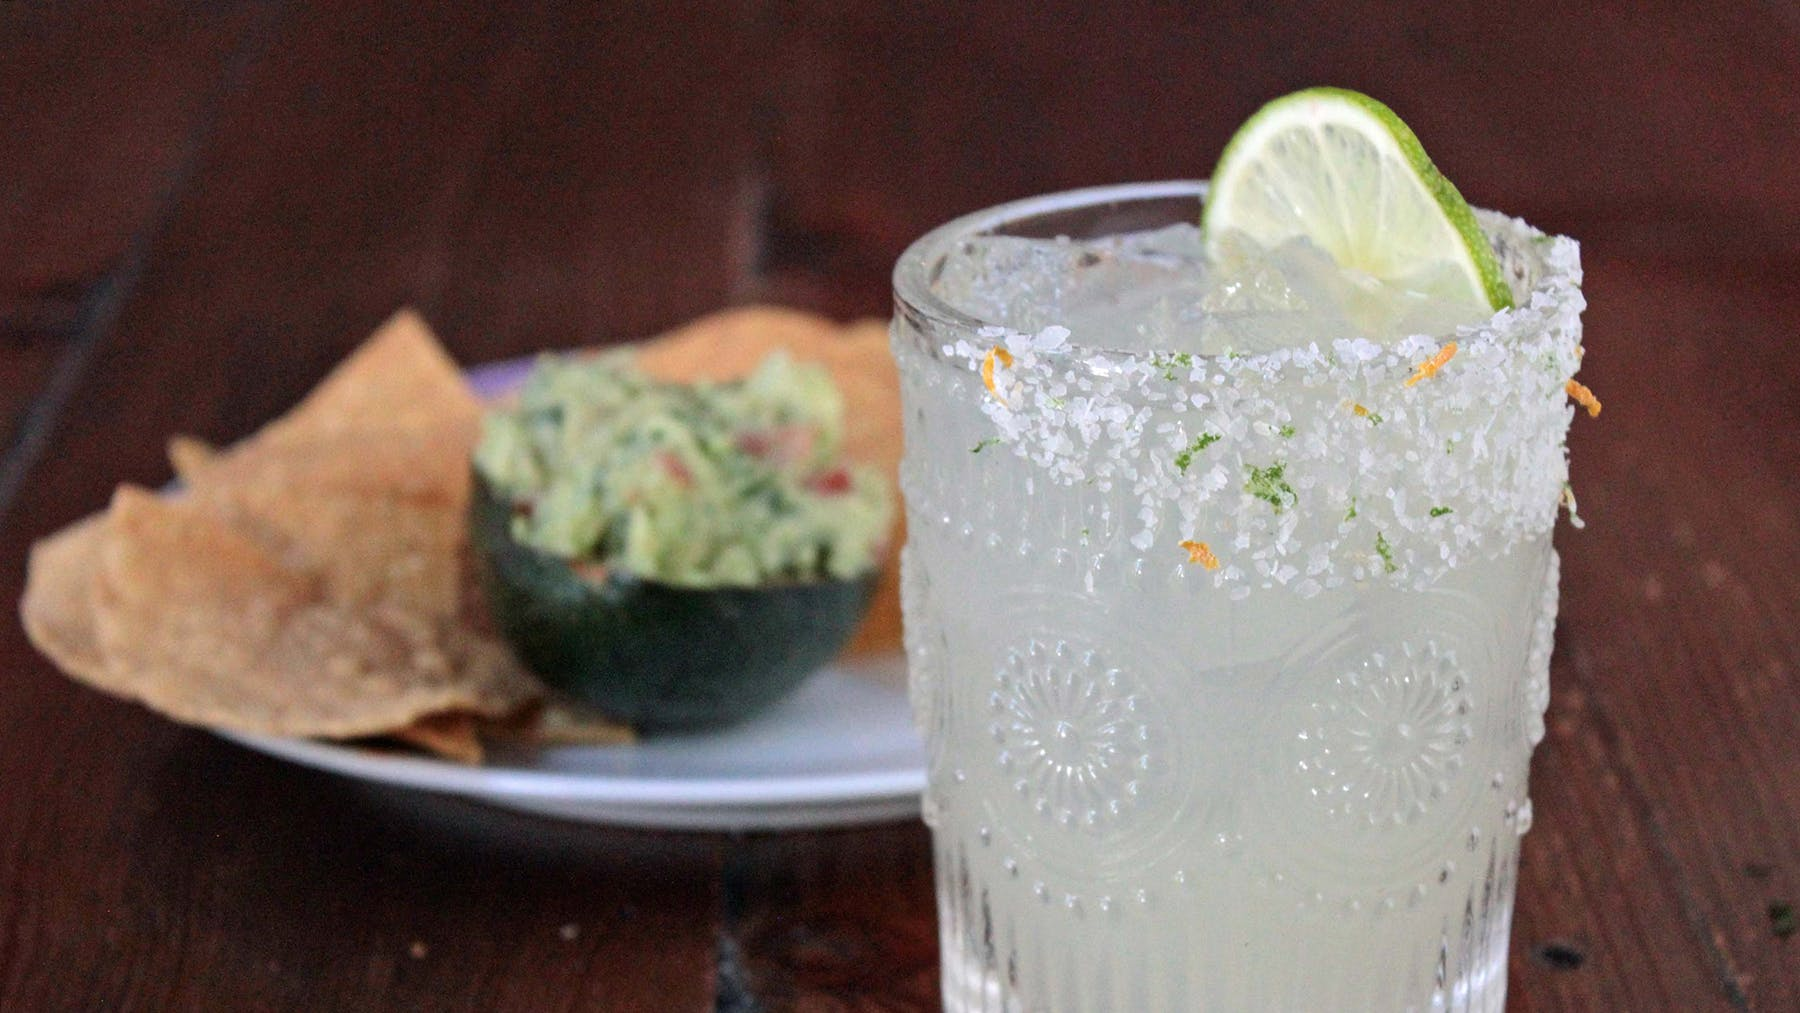 a glass of margarita with lime and guacamole in an avocado with chips on a plate in the back